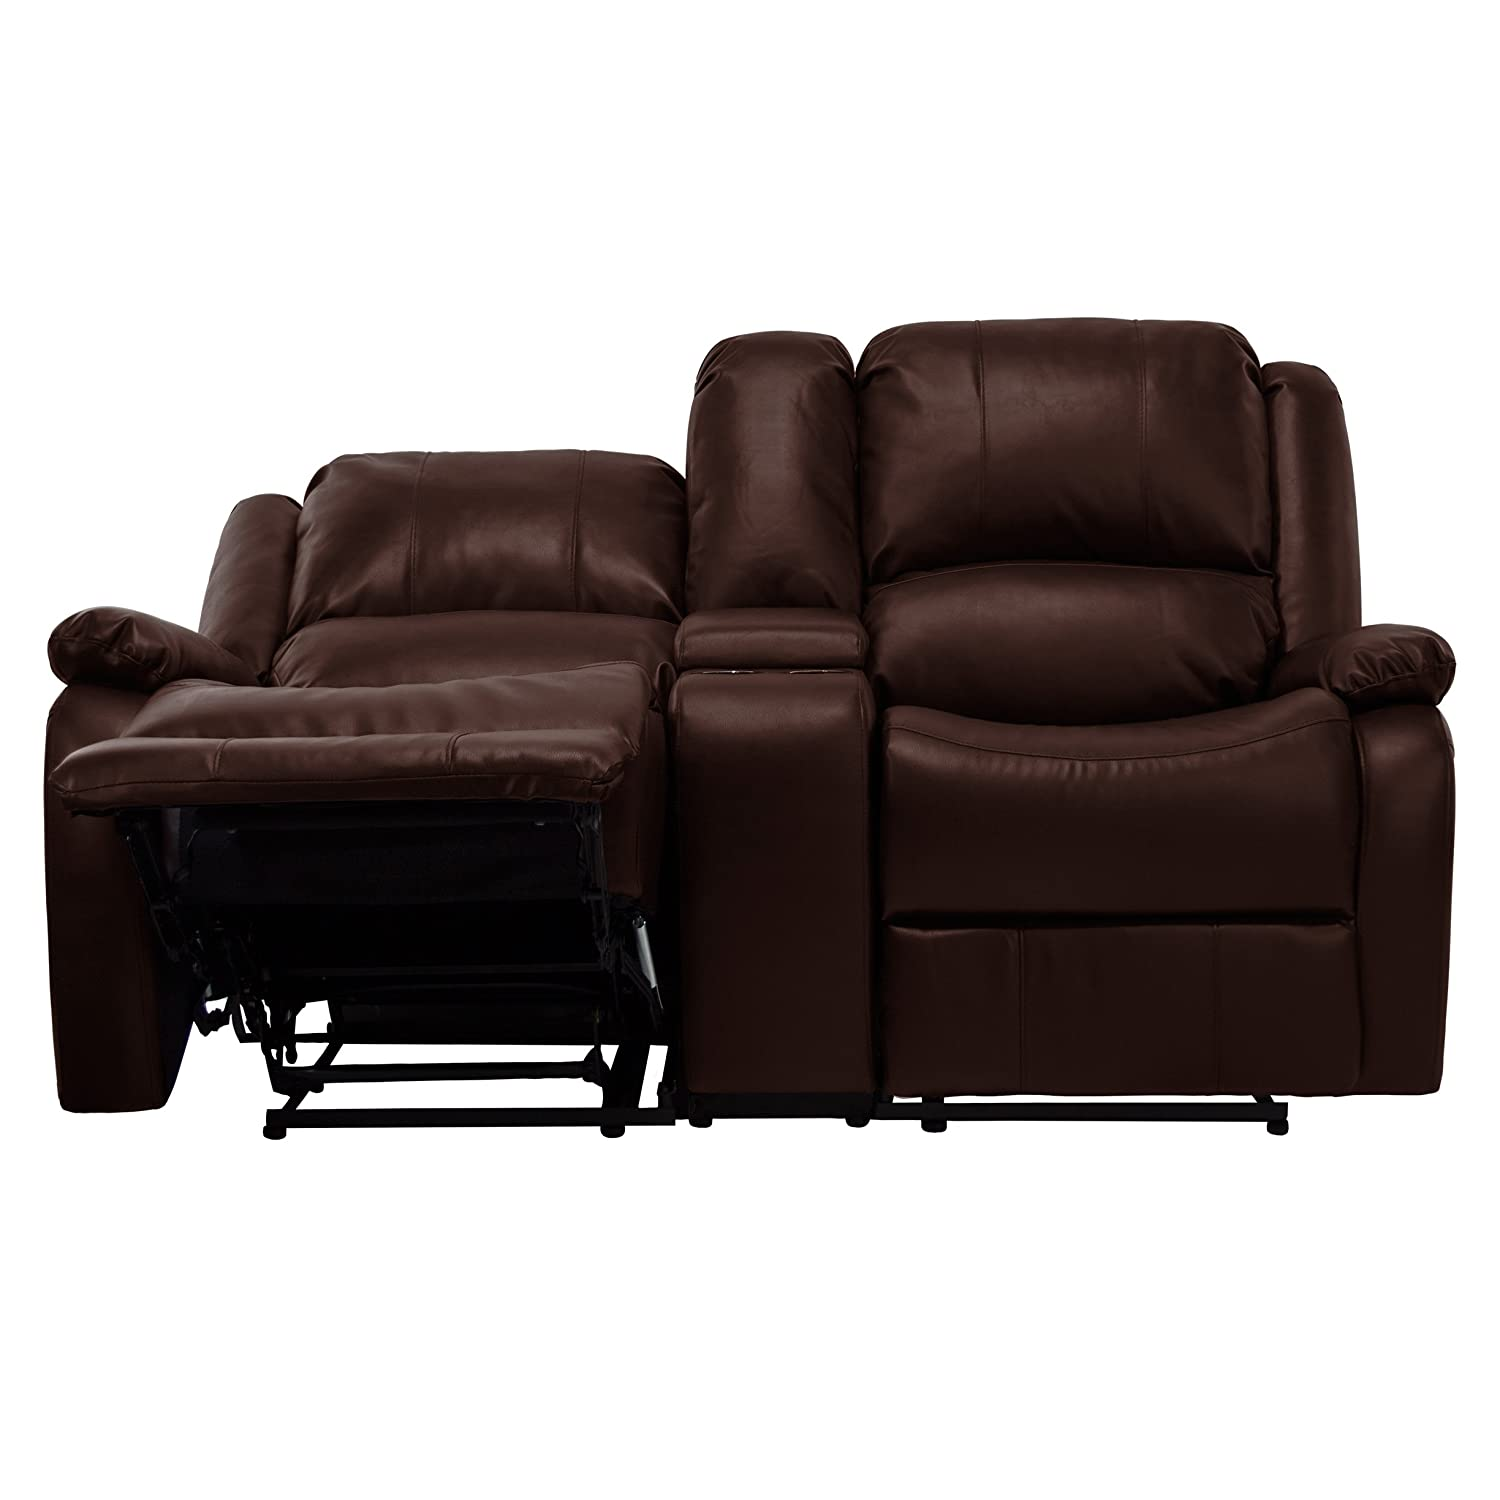 "Amazon RecPro Charles 67"" Double RV Zero Wall Hugger Recliner"